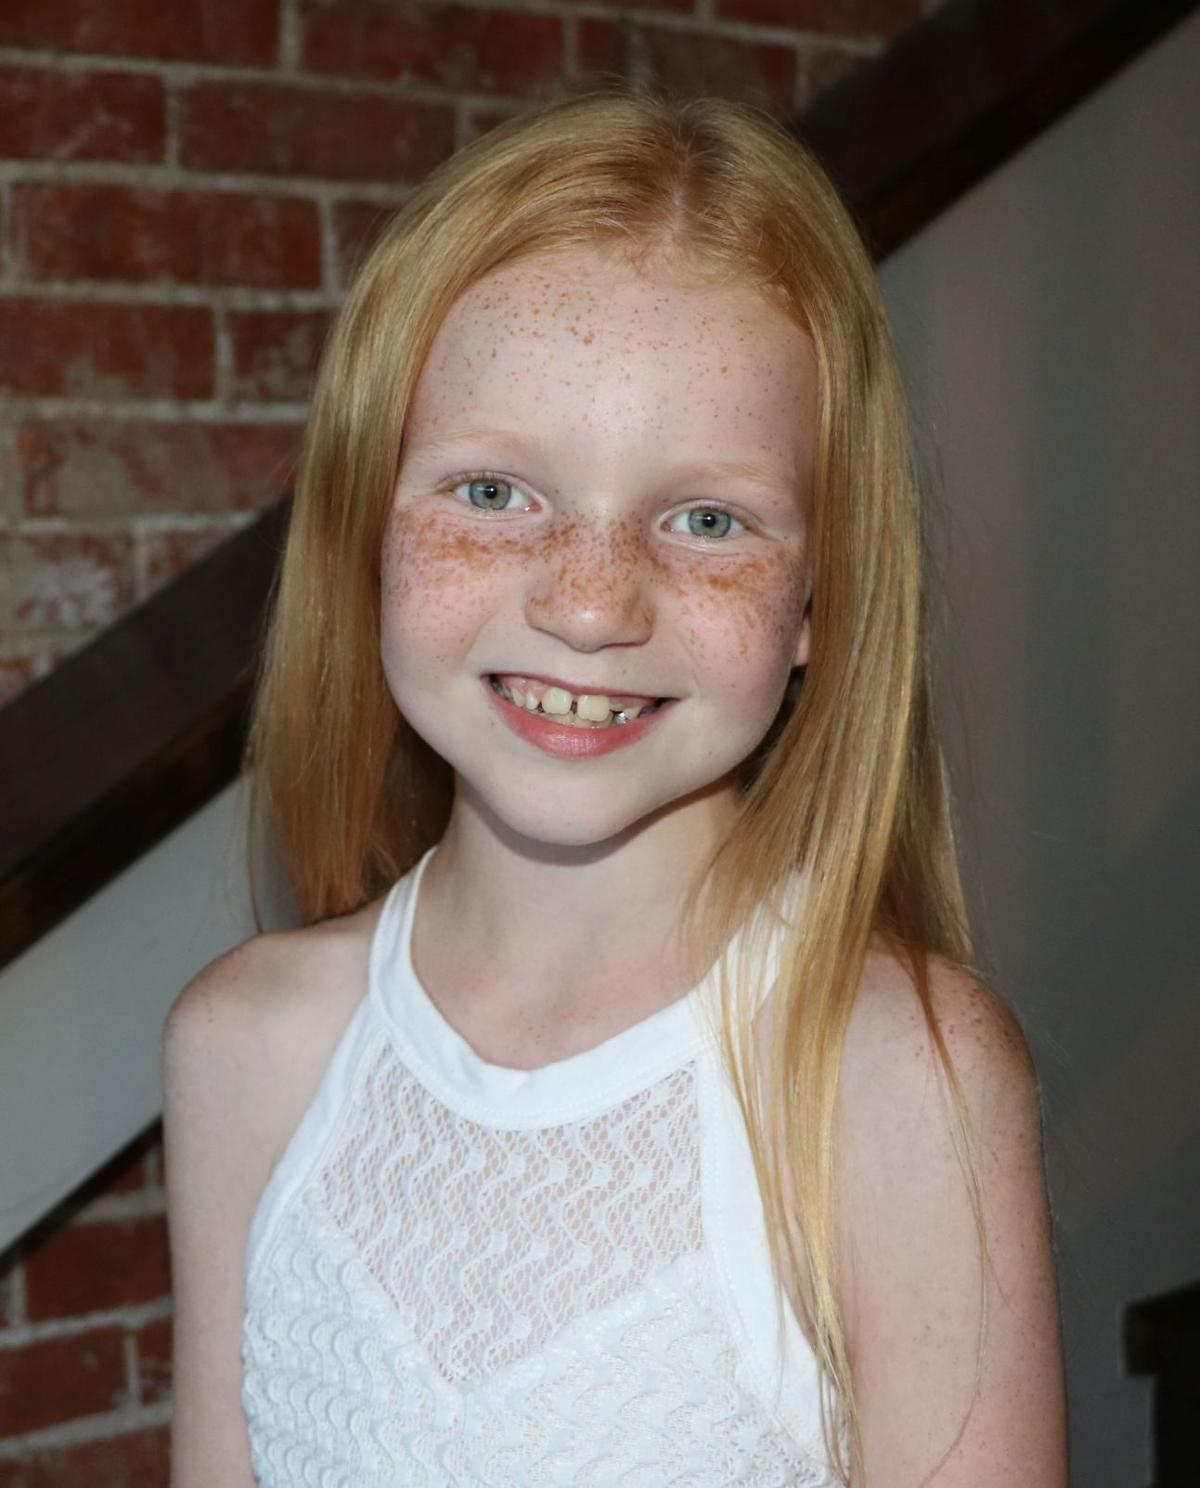 Pre-Teen Miss Moberly one of 13 - News - Moberly Monitor